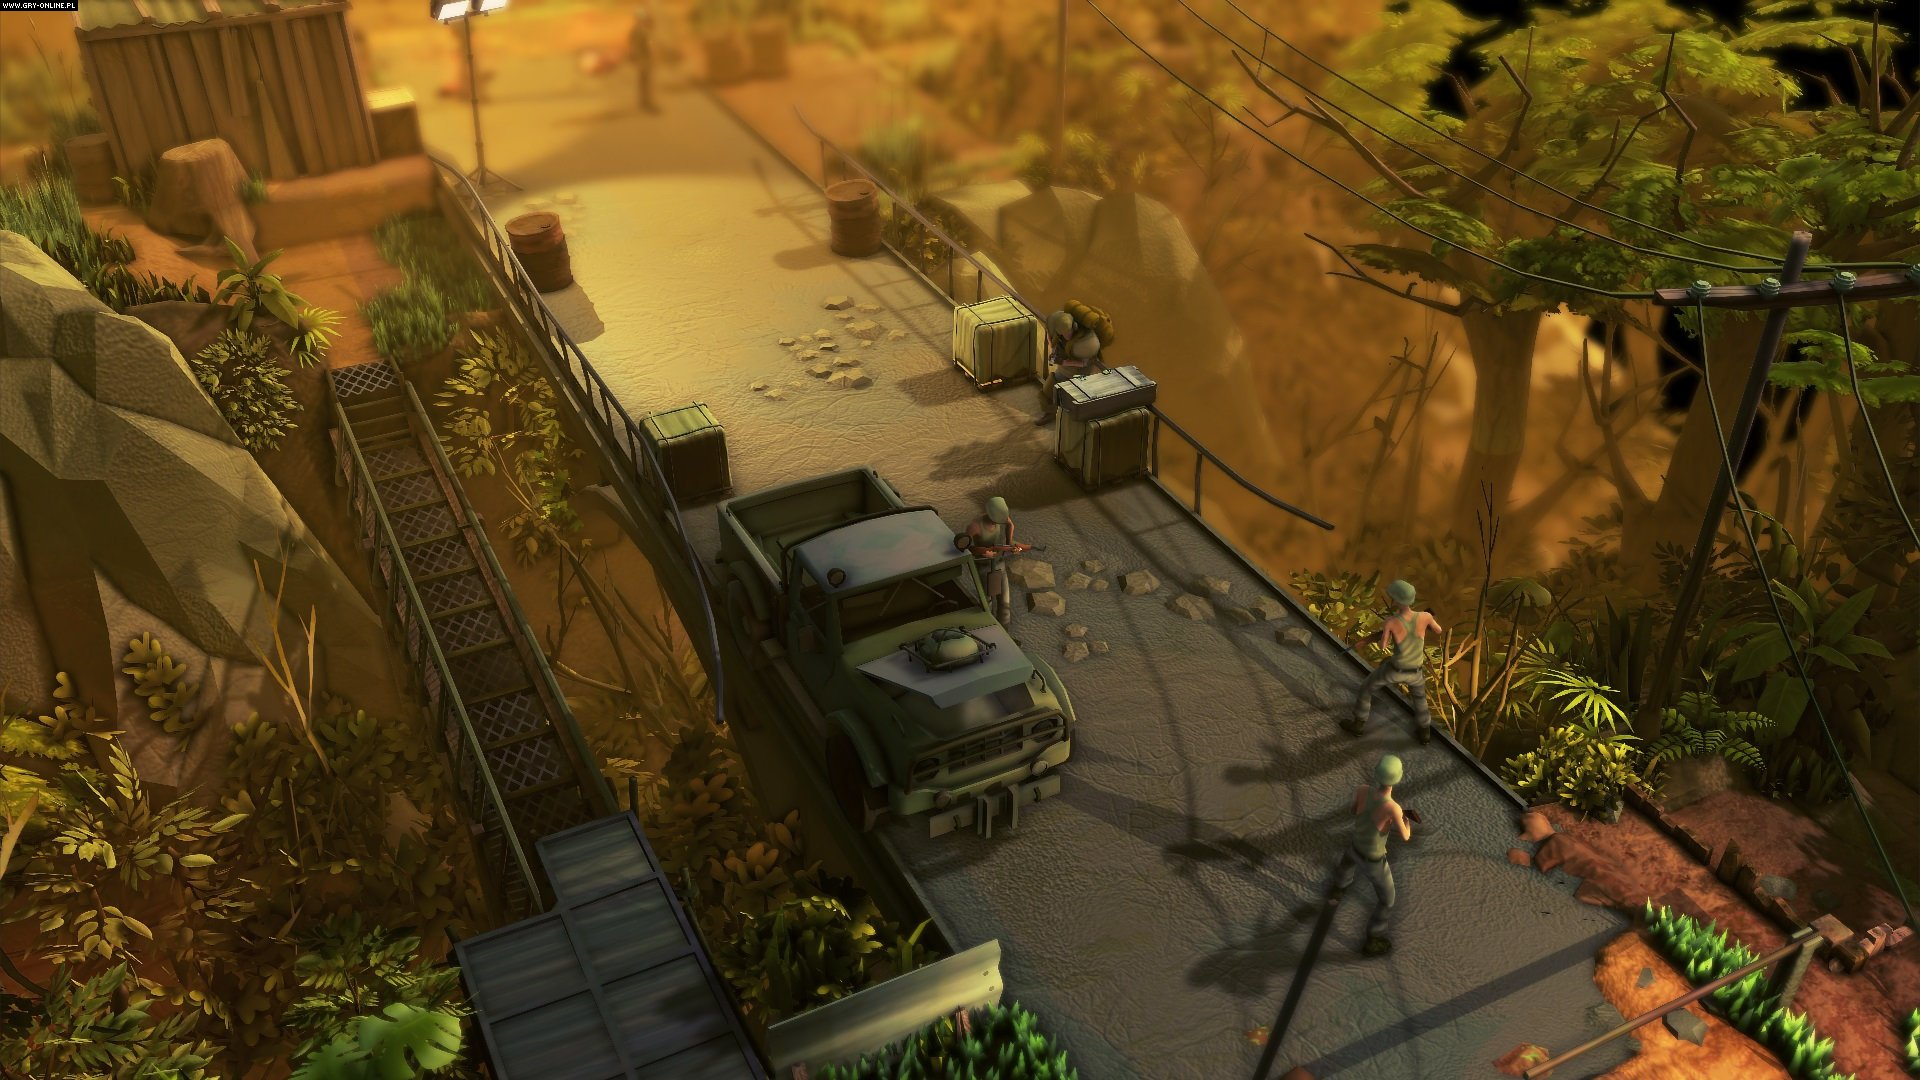 Jagged Alliance: Rage! PC, PS4, XONE Games Image 4/9, HandyGames, THQ Nordic / Nordic Games